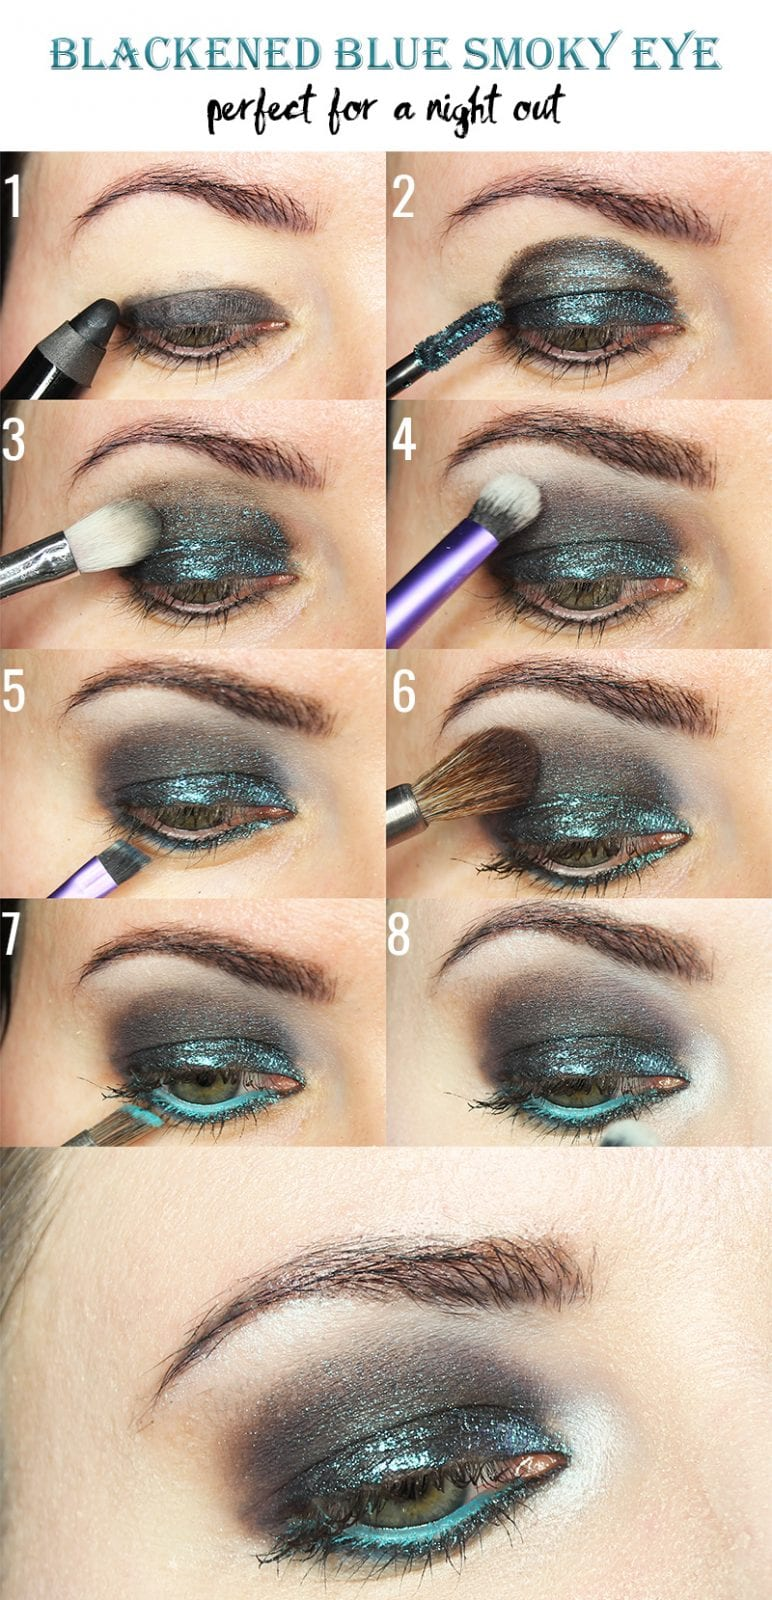 I'm sharing a blackened blue smokey eyes tutorial for hooded eyes. I'm using Black Moon Asteroid as the main eyeshadow for this look. I haven't done a Teal Thursday in forever, so I thought you'd enjoy this. This smokey eyes eyeshadow tutorial will show you a quick way to create a smokey look even if you don't have a liquid eyeshadow like Asteroid. You can always substitute any dark sparkly eyeshadow in your favorite color in its place.